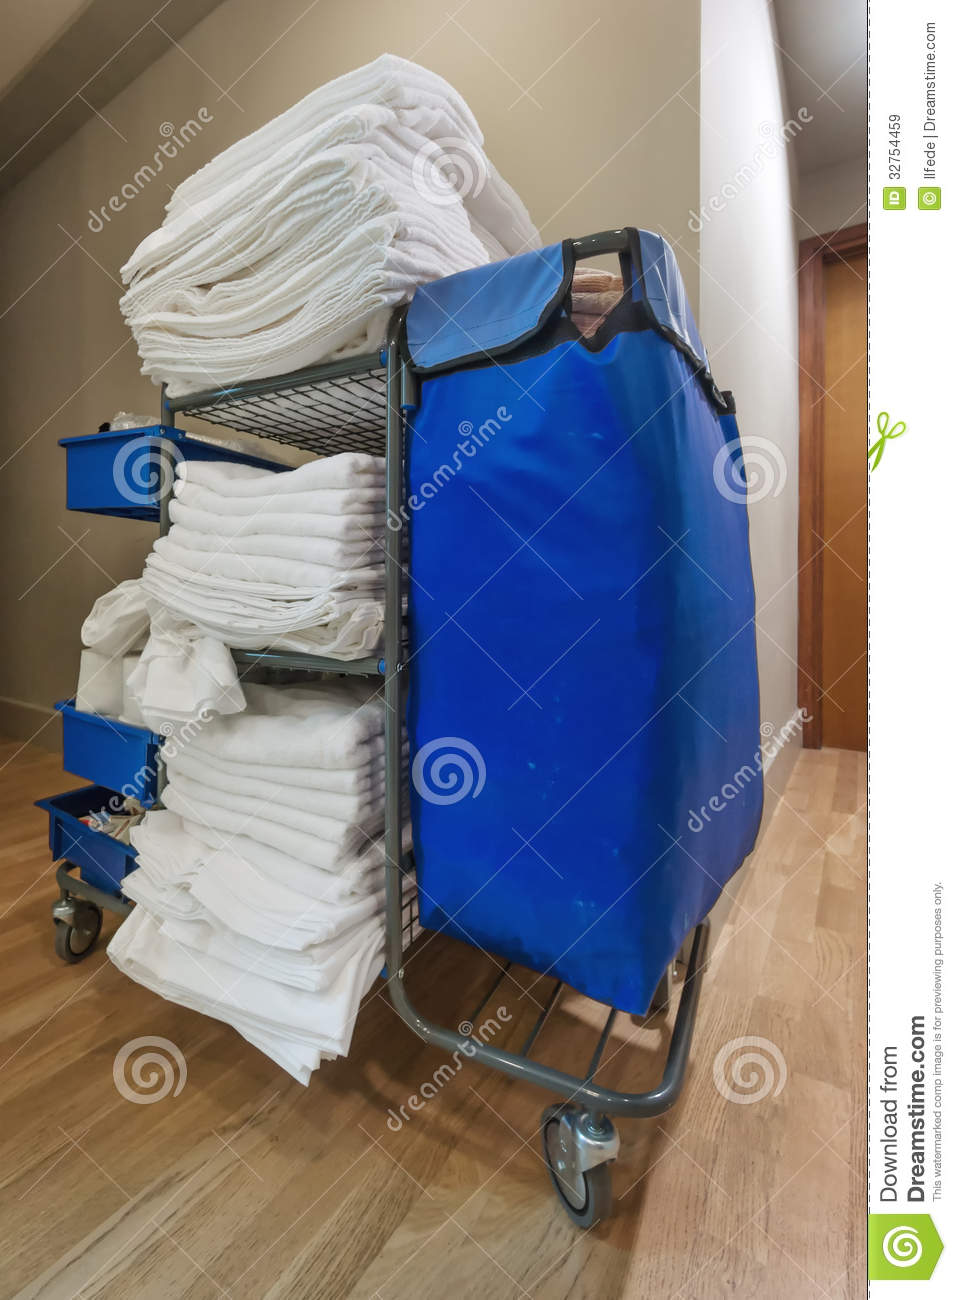 Room service janitorial cart in the hotel stock image for Hotel room service cart